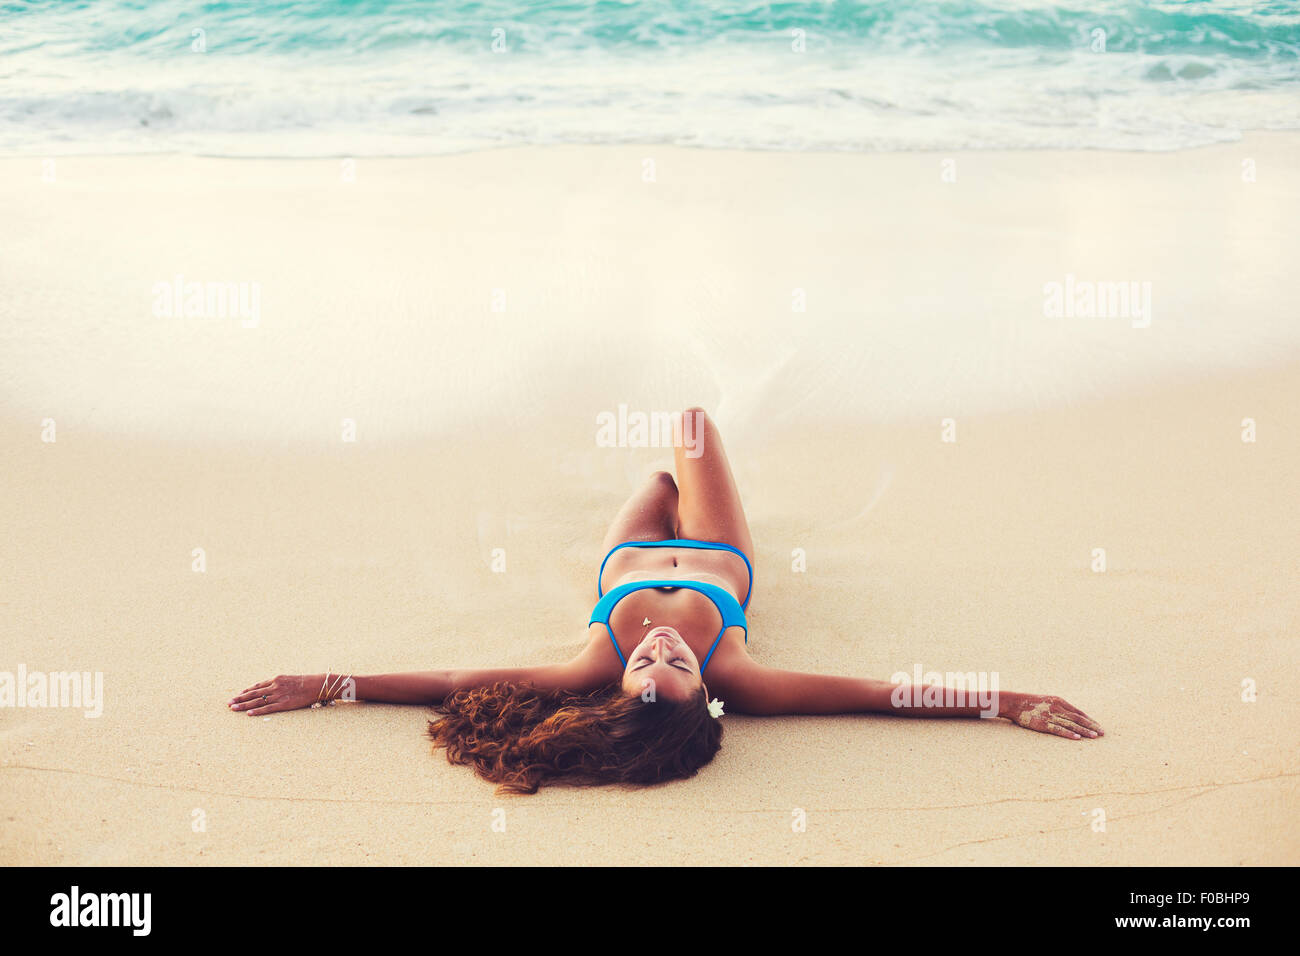 Summer Lifestyle, Beautiful Happy Carefree Young Woman Relaxing on the Beach at Sunset - Stock Image